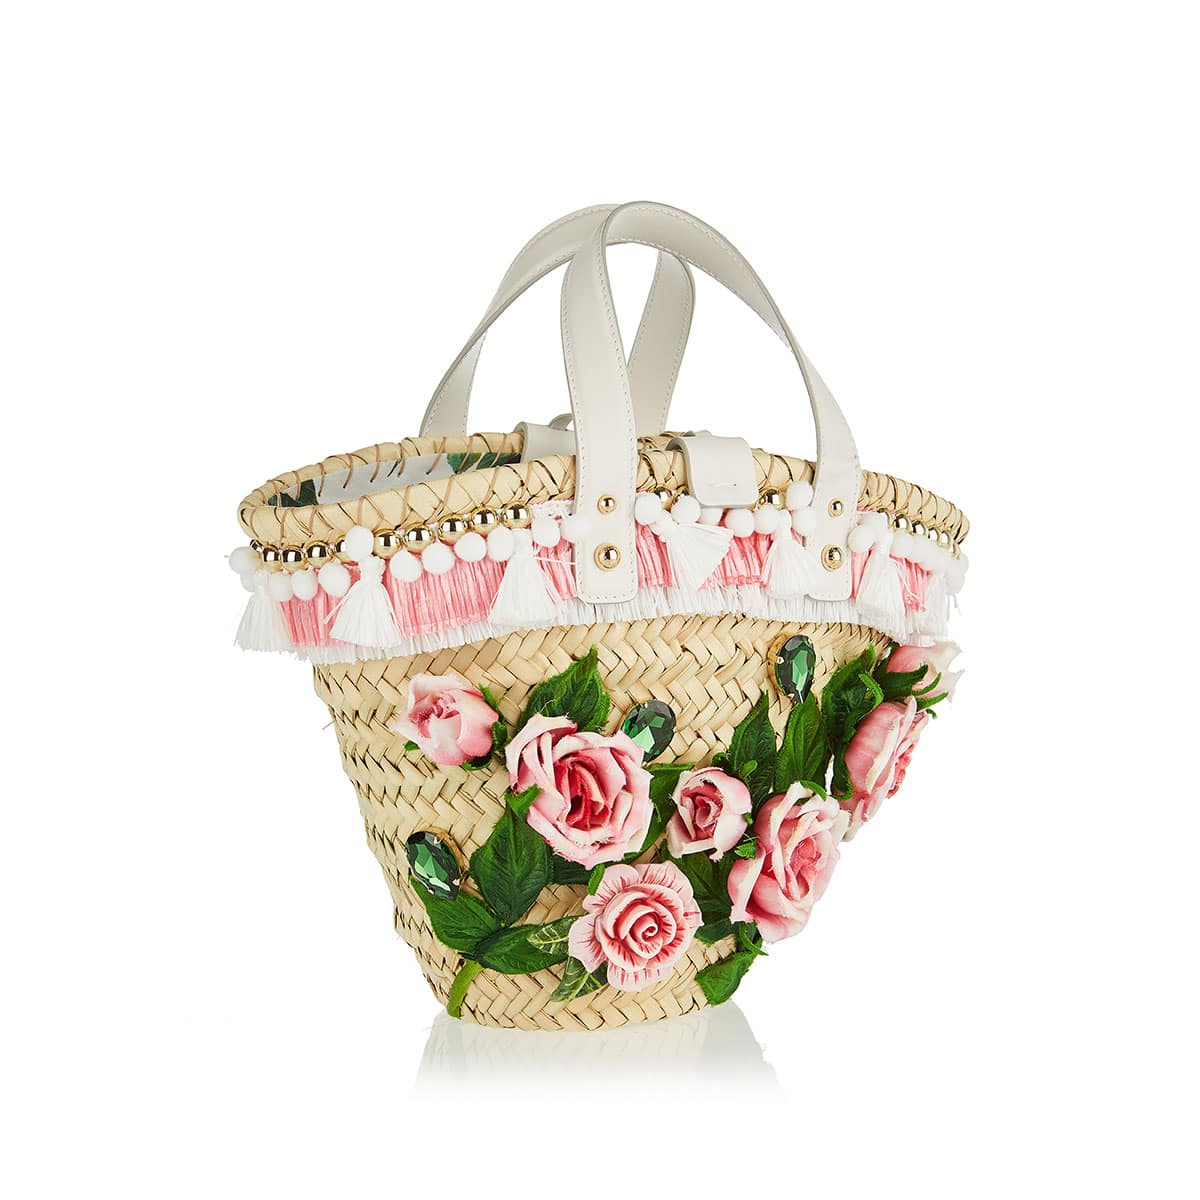 Flower-embellished straw basket bag